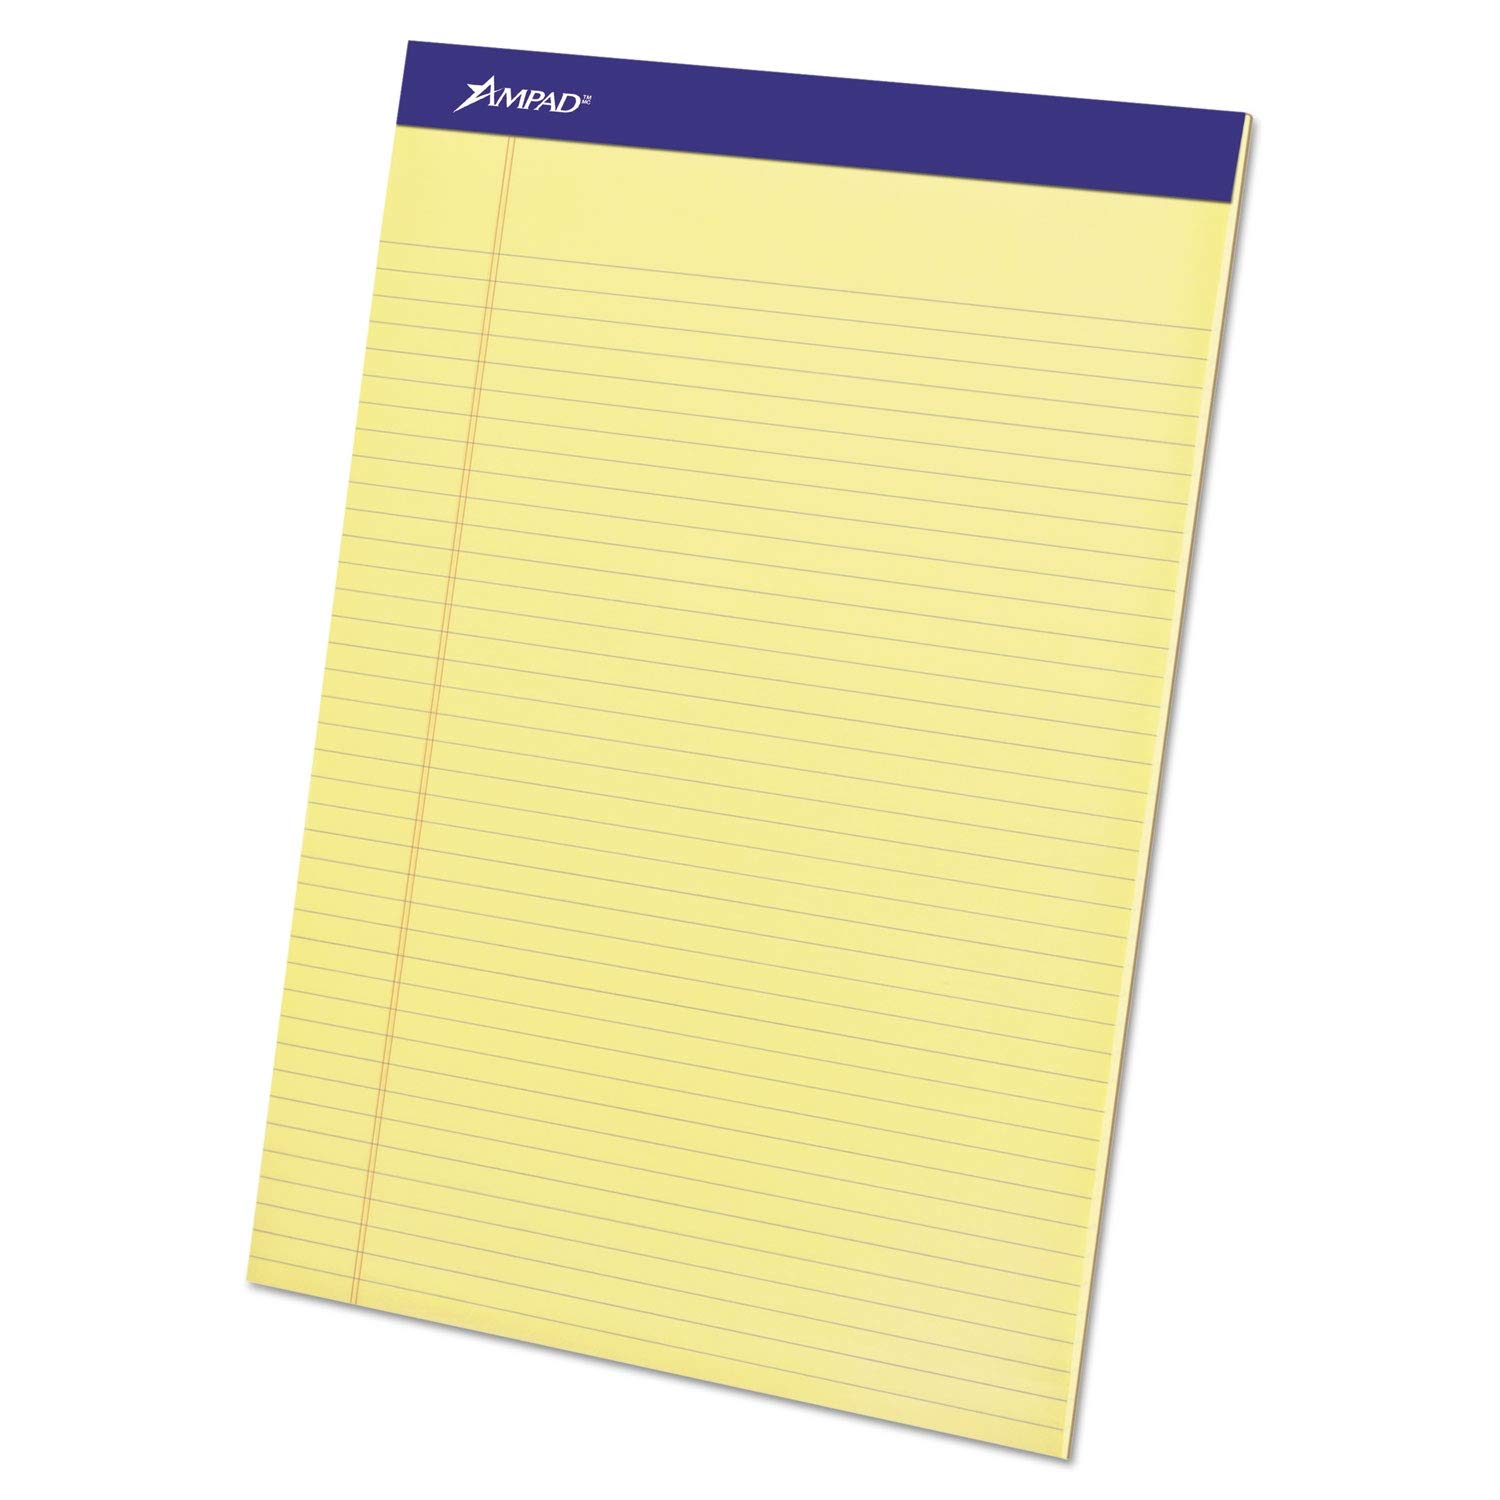 Ampad Perforated Writing Pad, 8 1/2 x 11 3/4, Canary, 50 Sheets, Dozen - 20-222